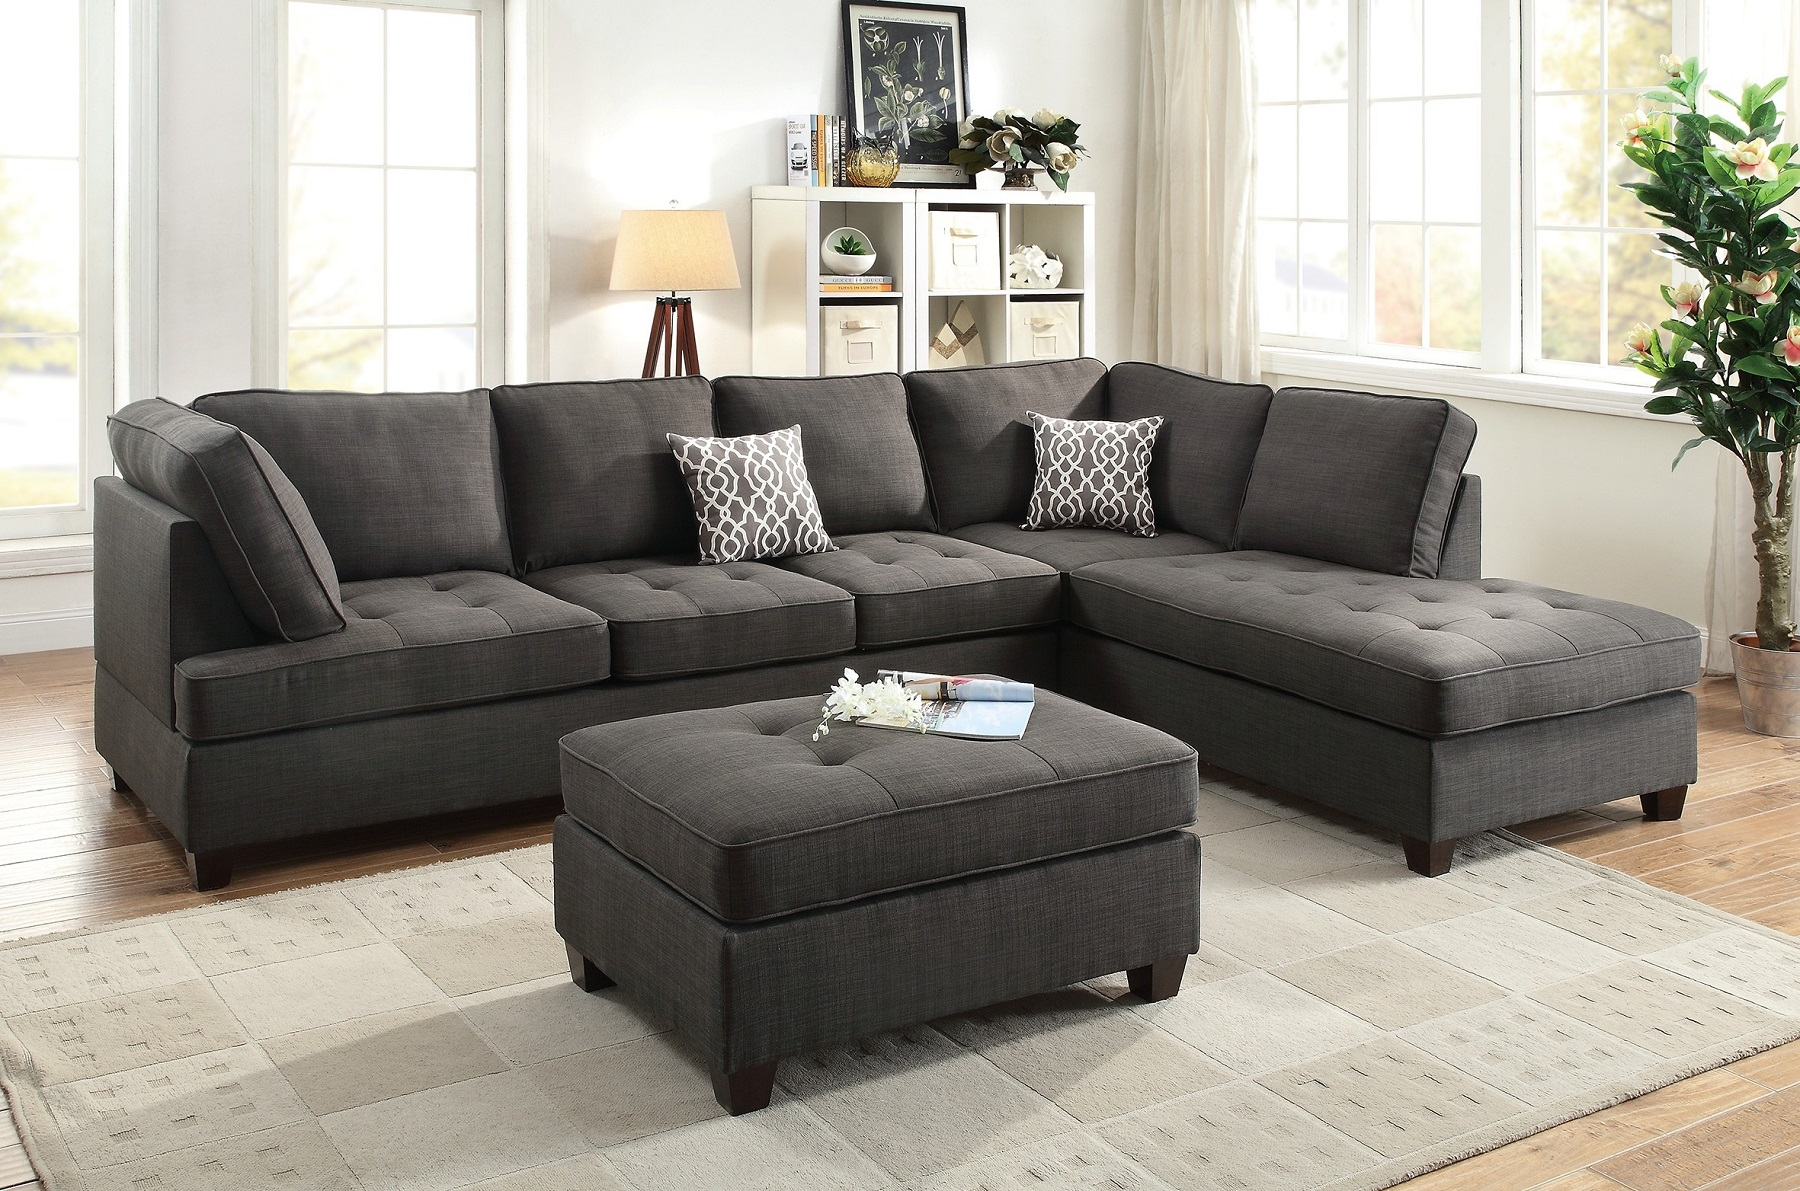 Sectional Sofa With Chaise Nova Sectional Sofa Chaise In Gray